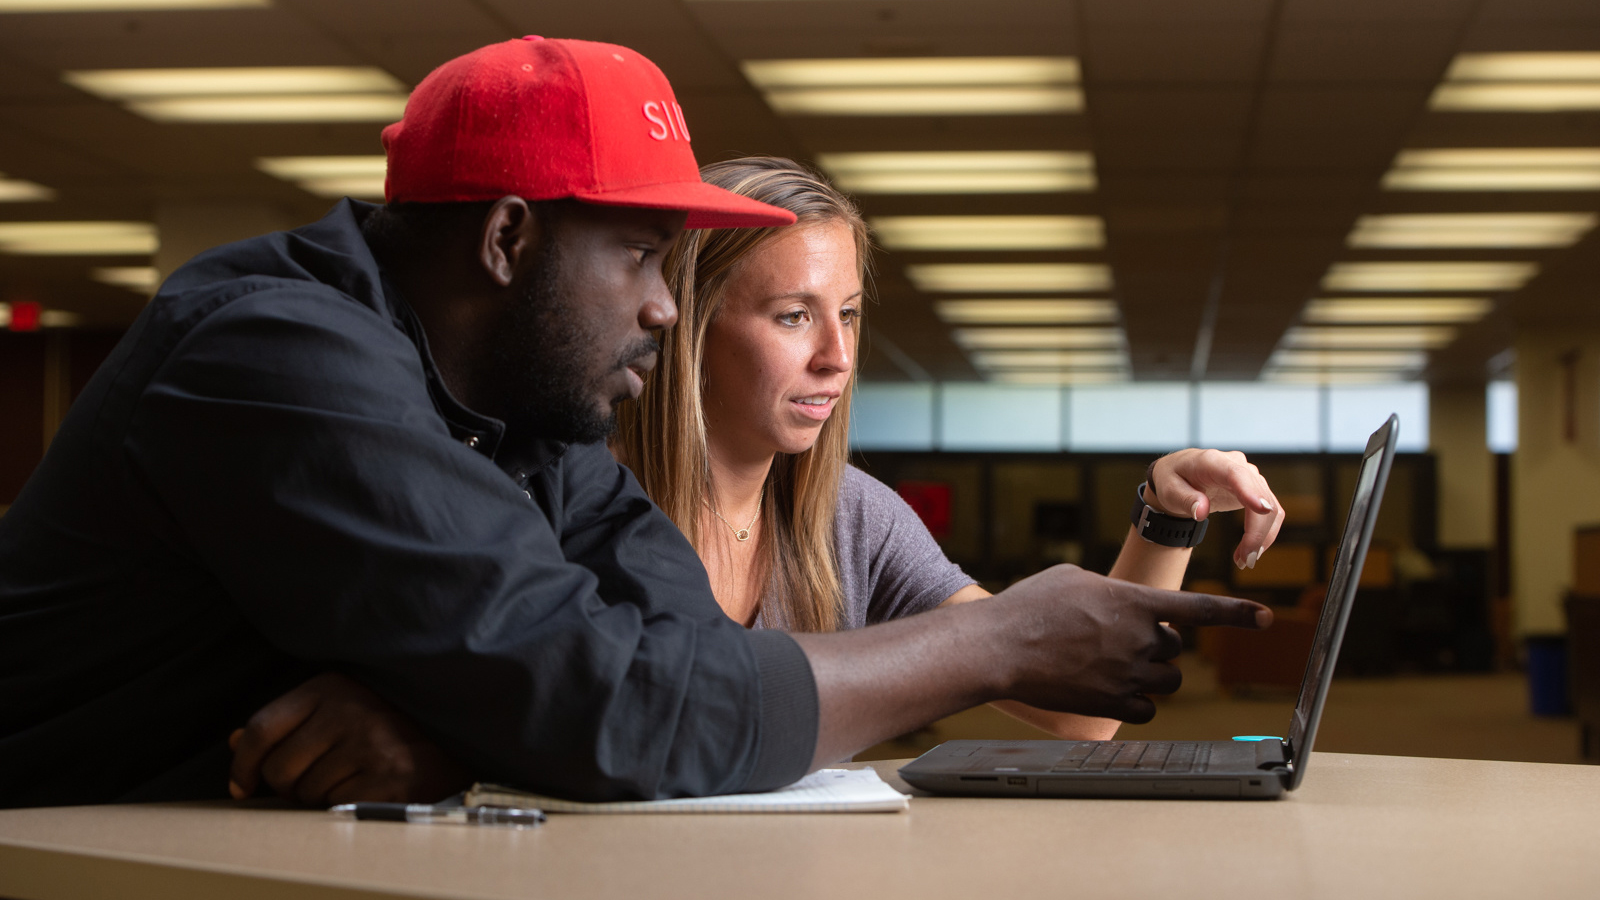 A student and teacher at SIUE